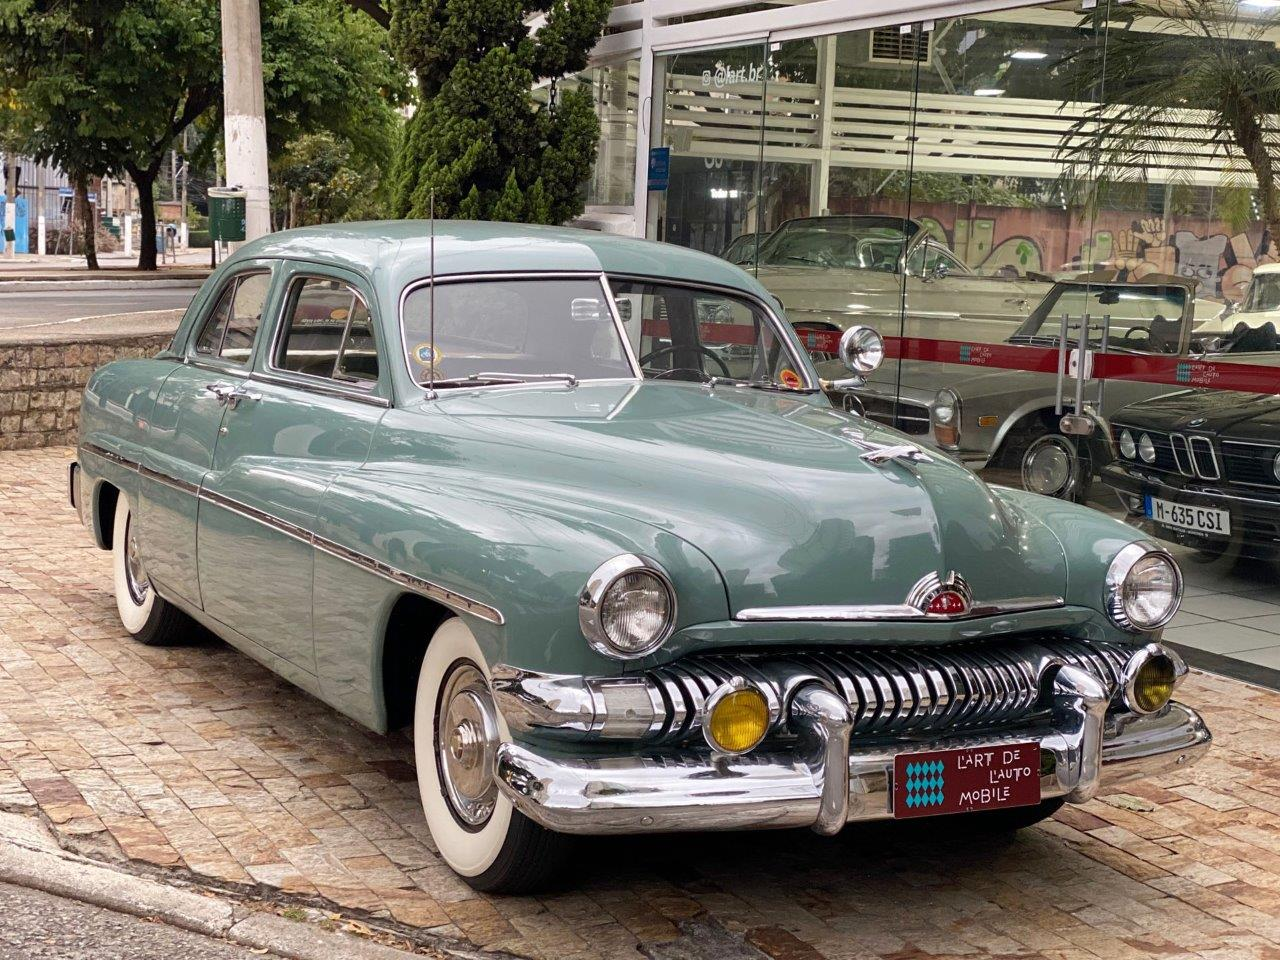 MERCURY SEDAN - 1951 Image